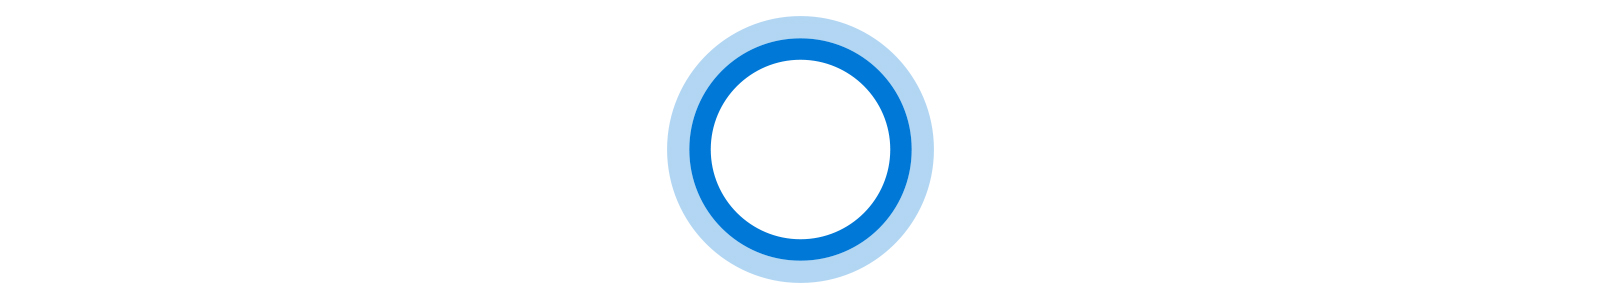 Icono animado de Cortana